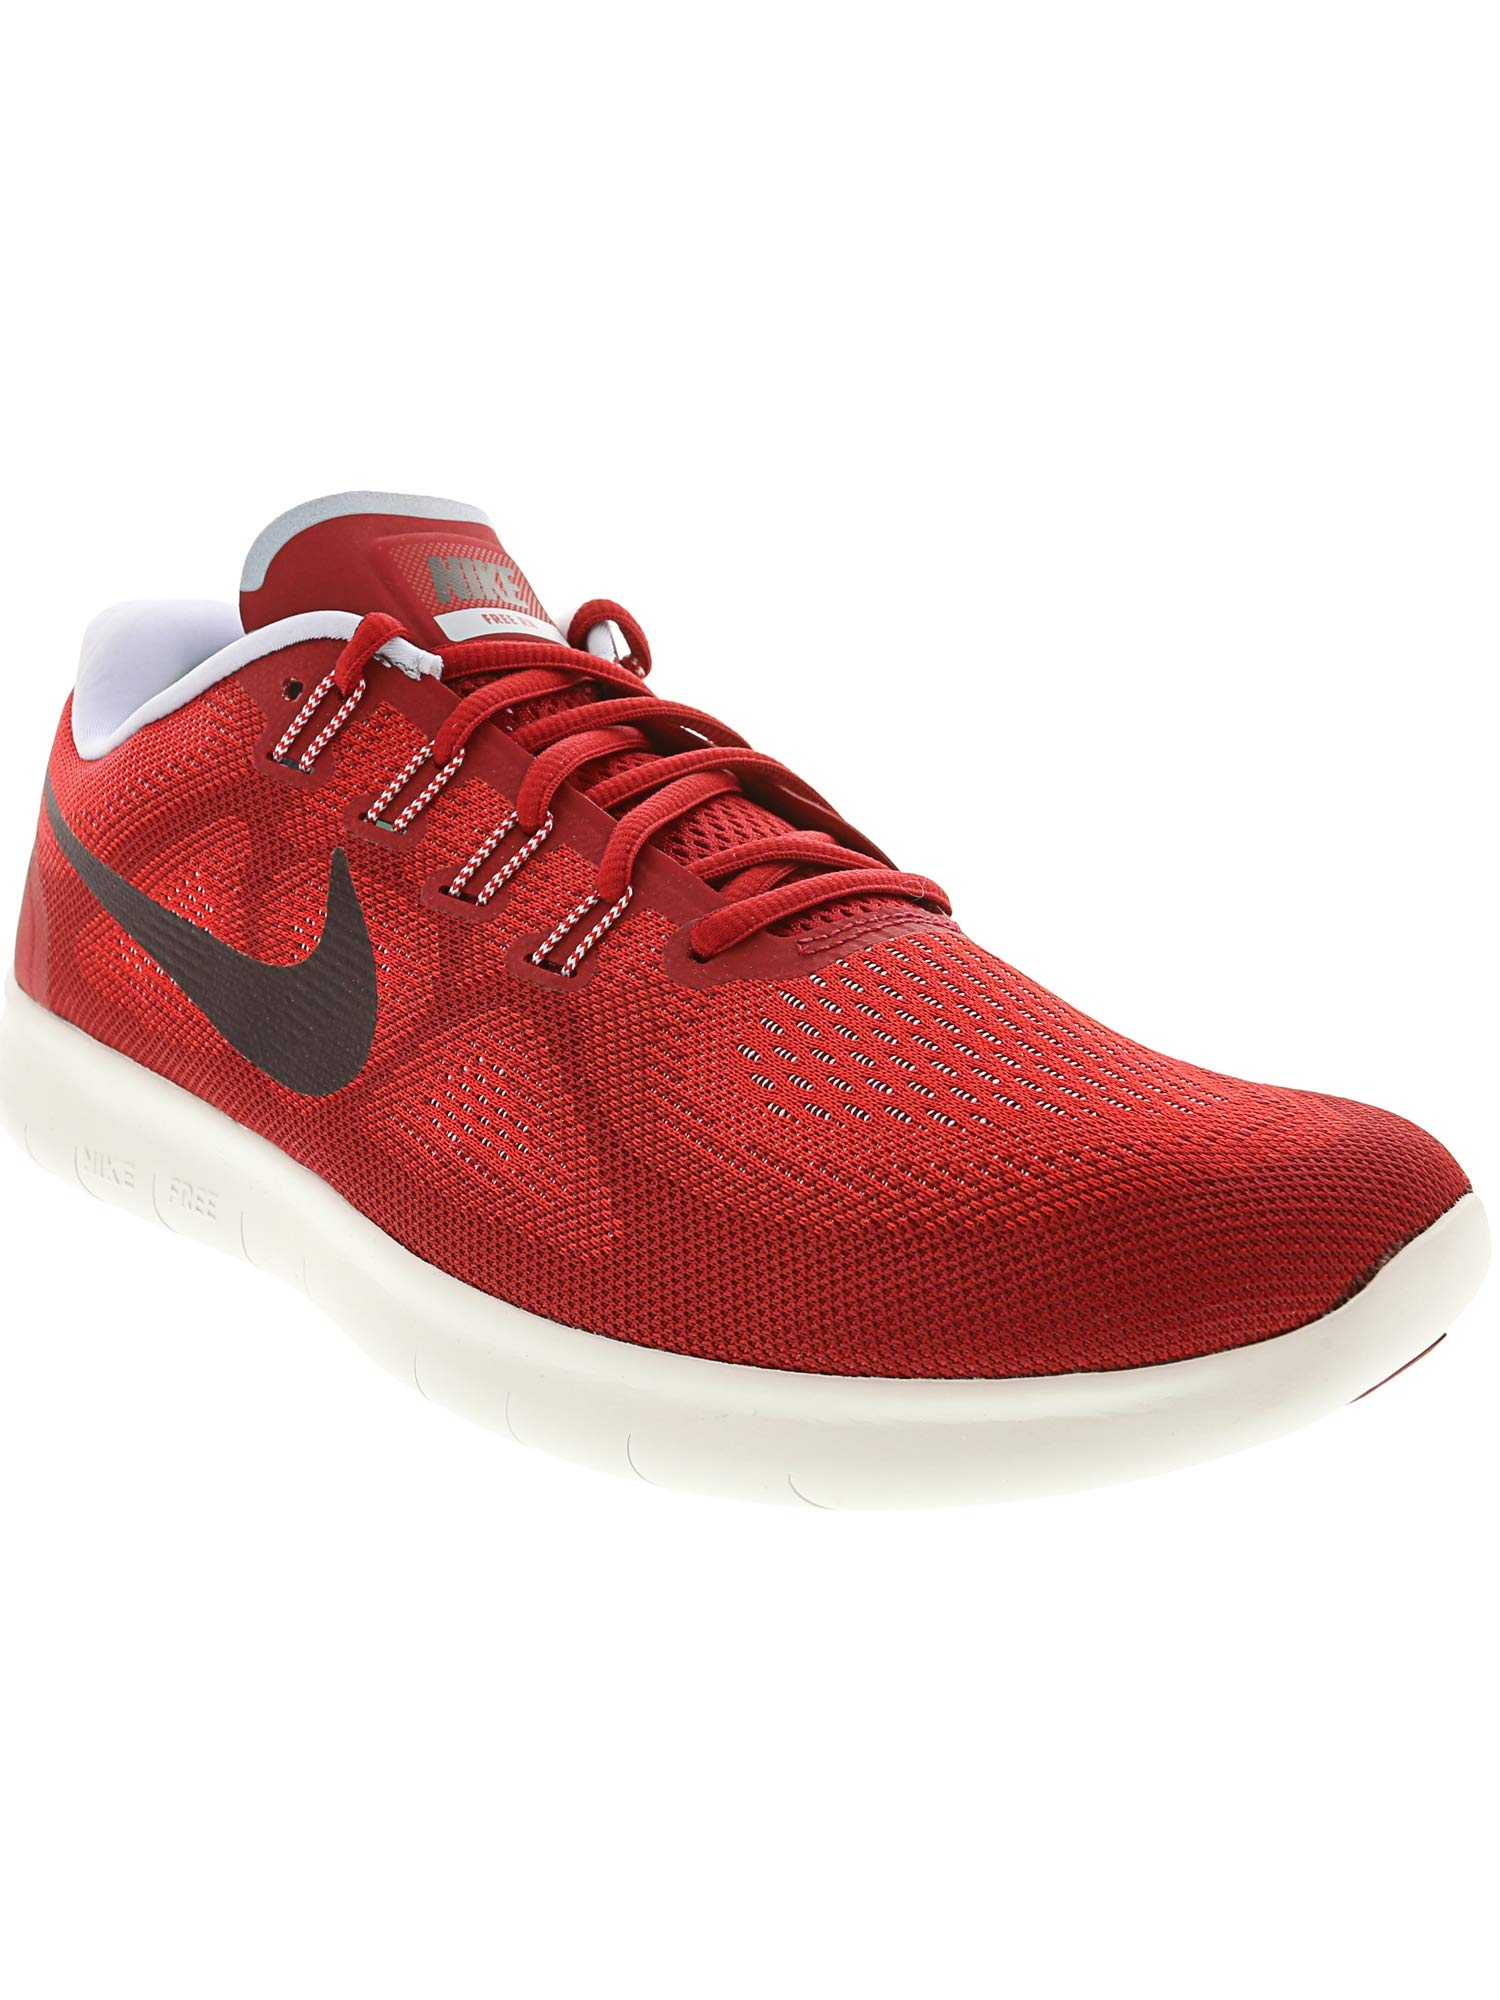 Nike Free RN 2017 Mens Running Trainers 880839 Sneakers Shoes (UK 7 US 8 EU 41, University red Port Wine 602) by Nike (Image #3)